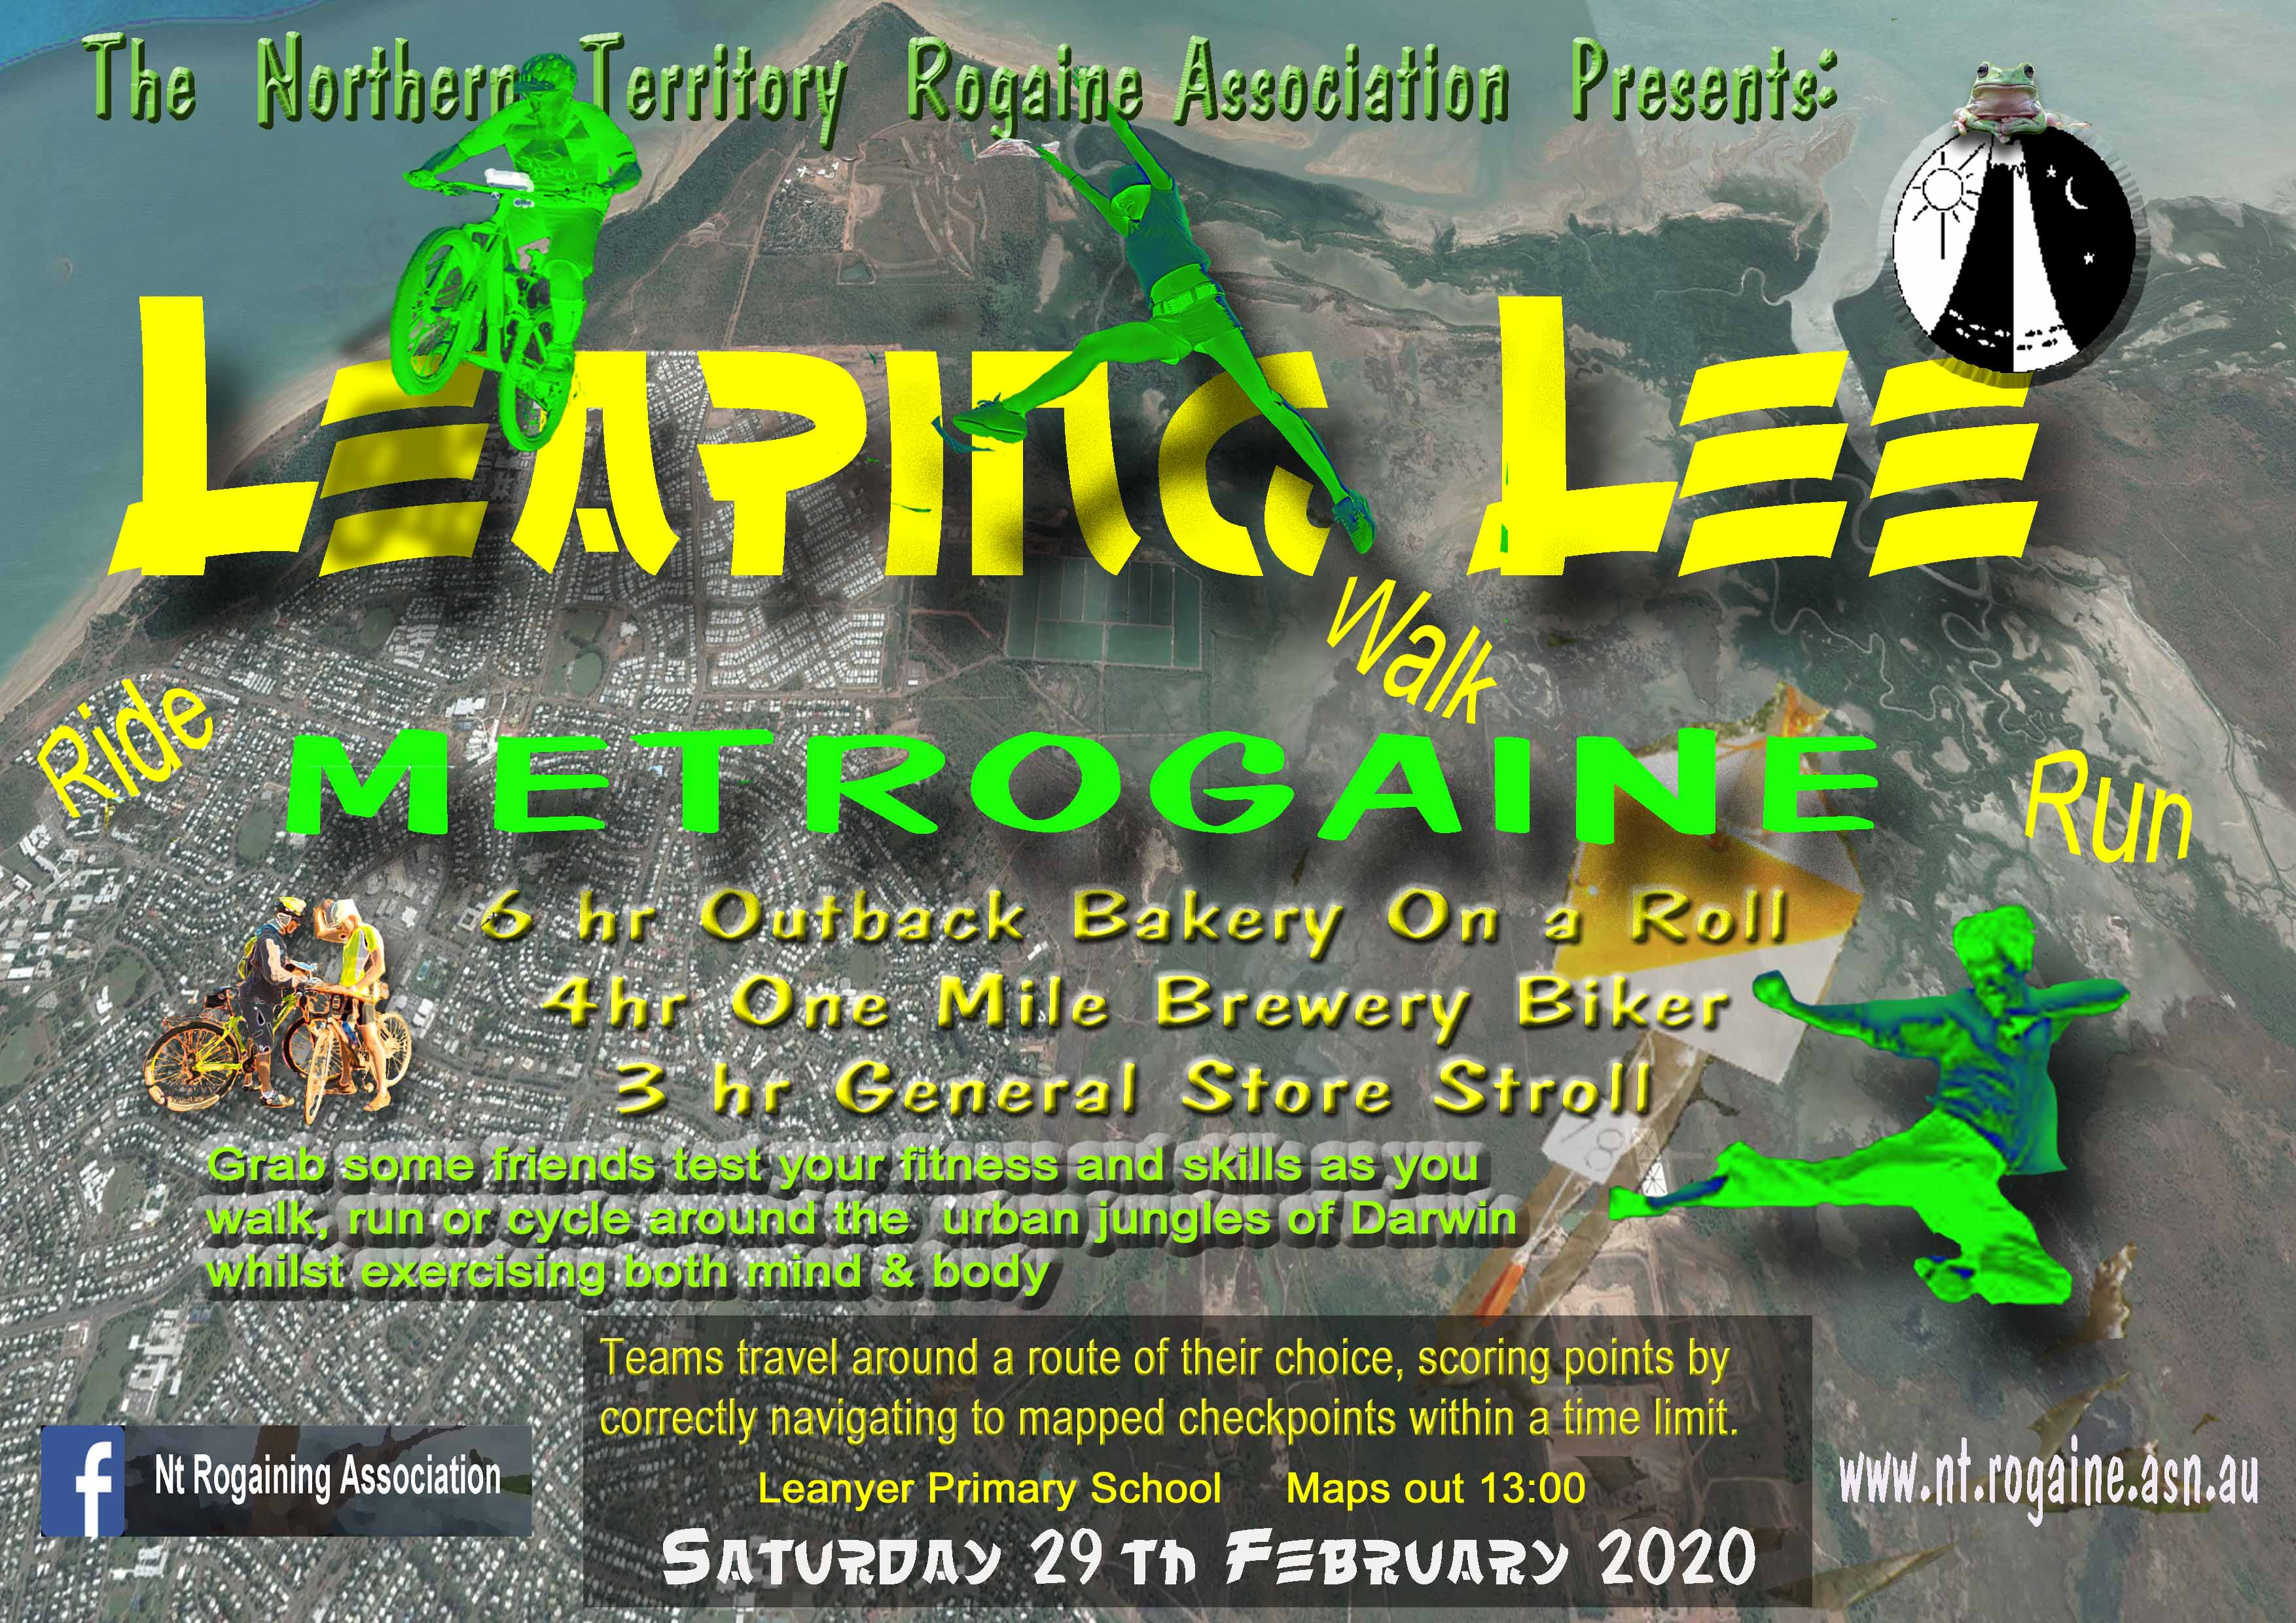 Leaping Lee Metrogaine